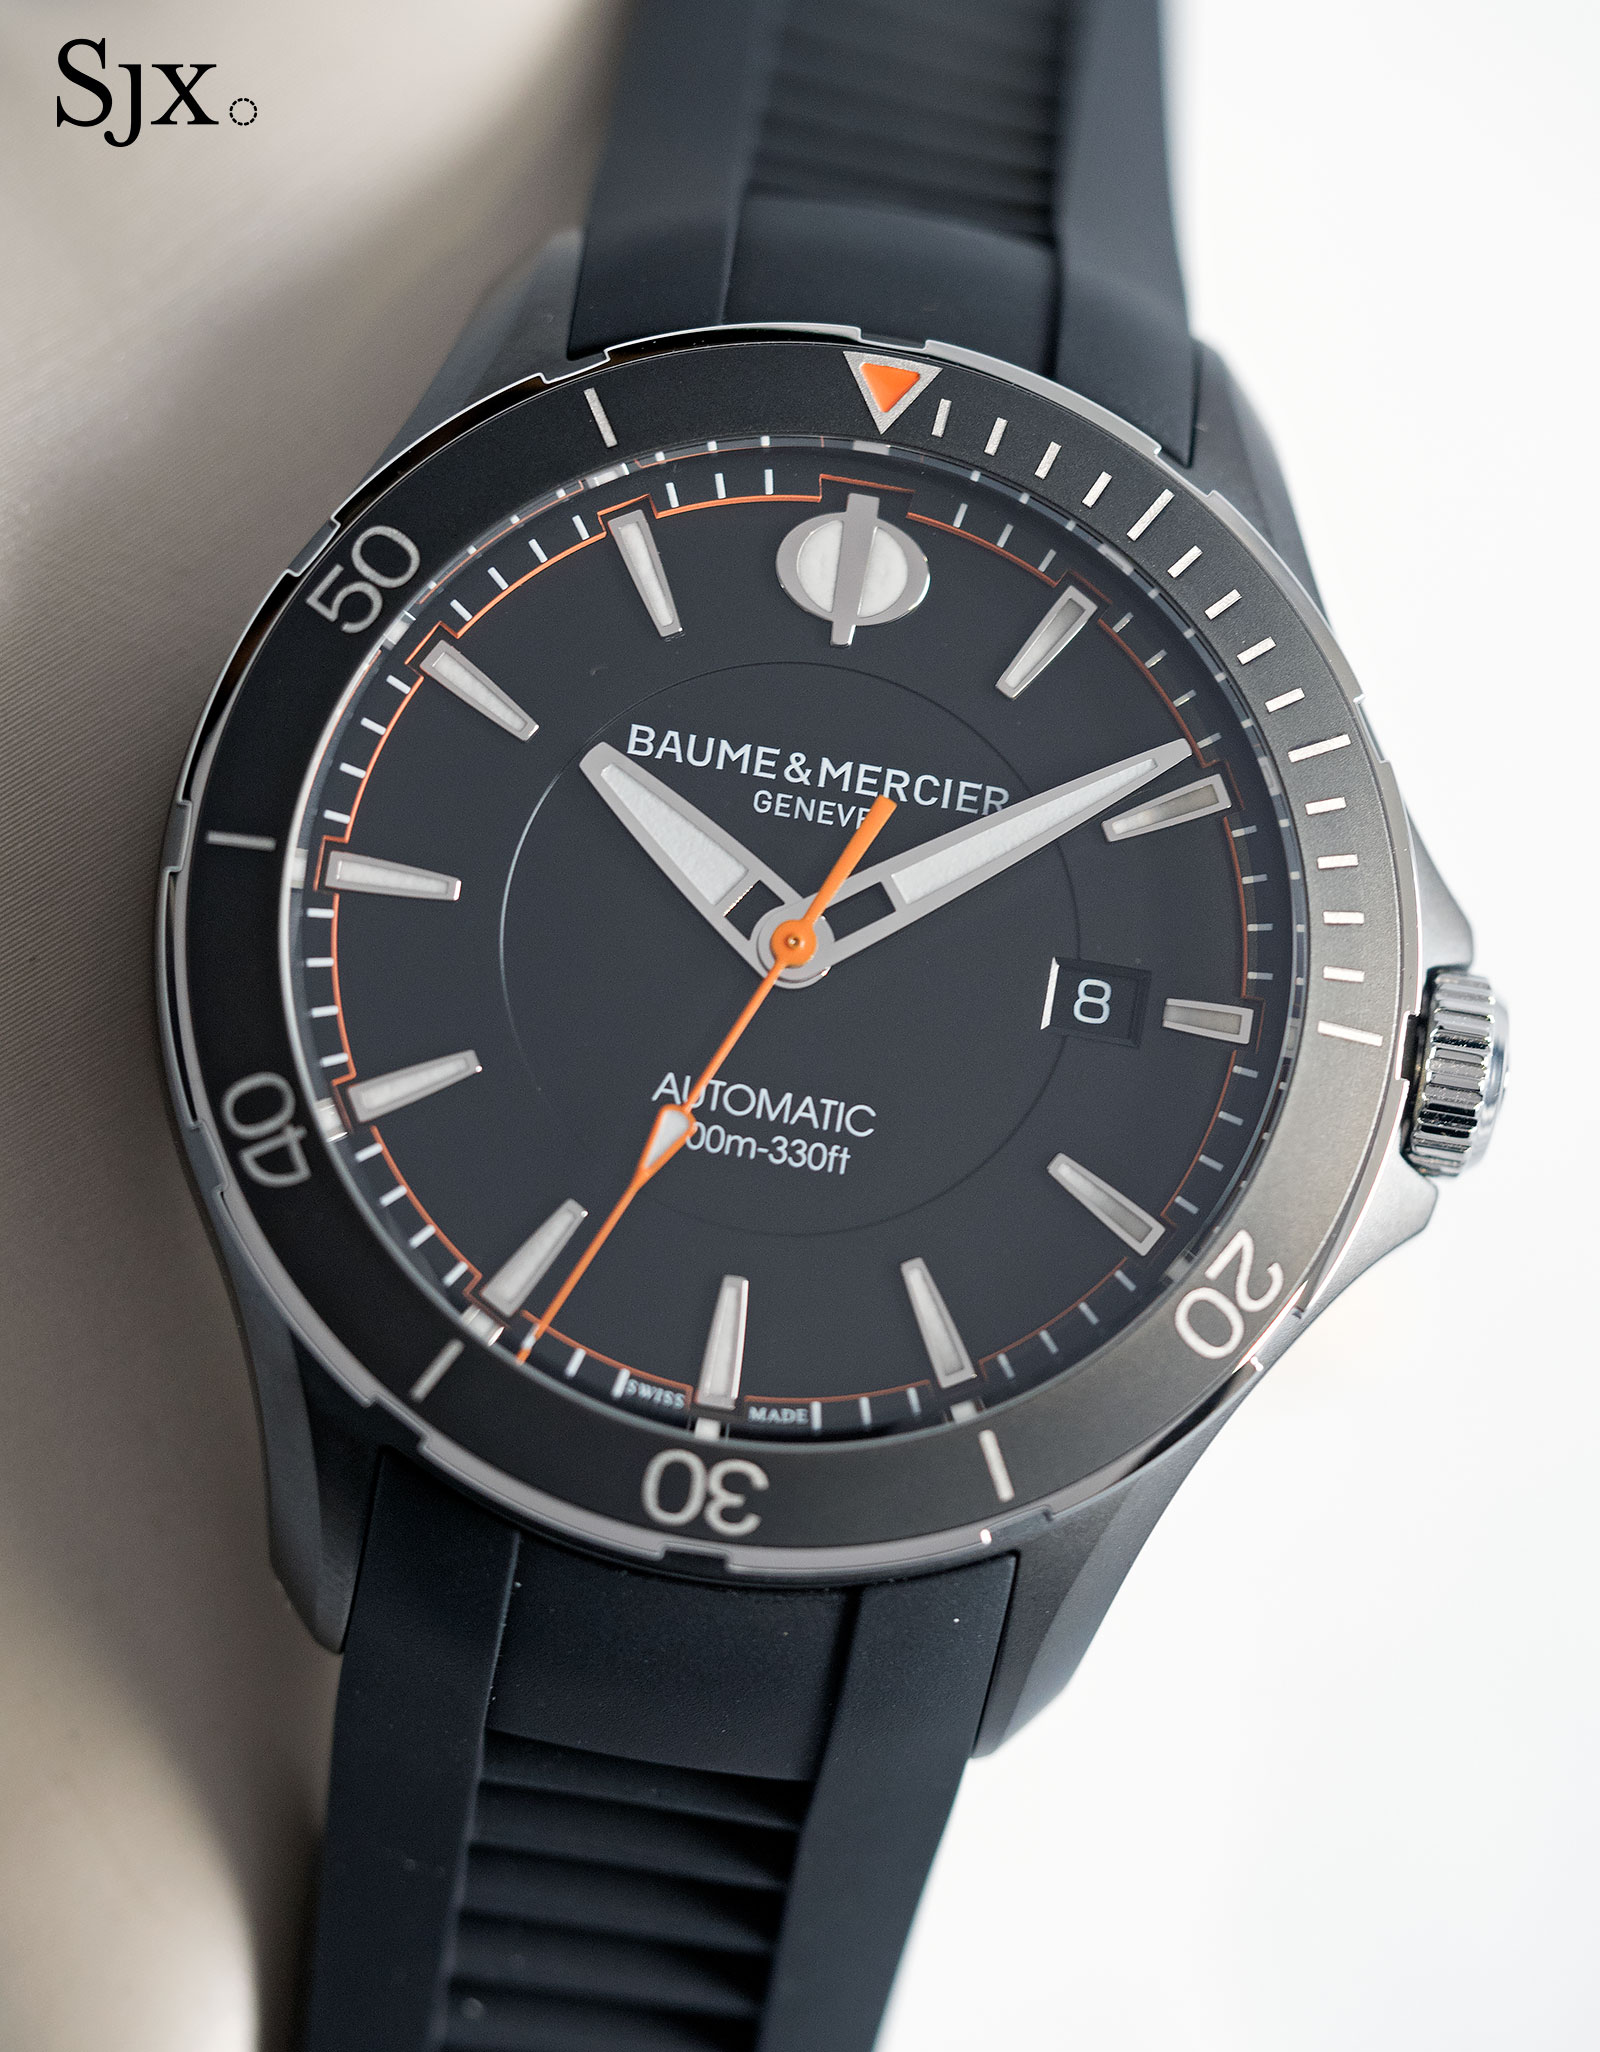 Baume & Mercier Clifton Club ADLC